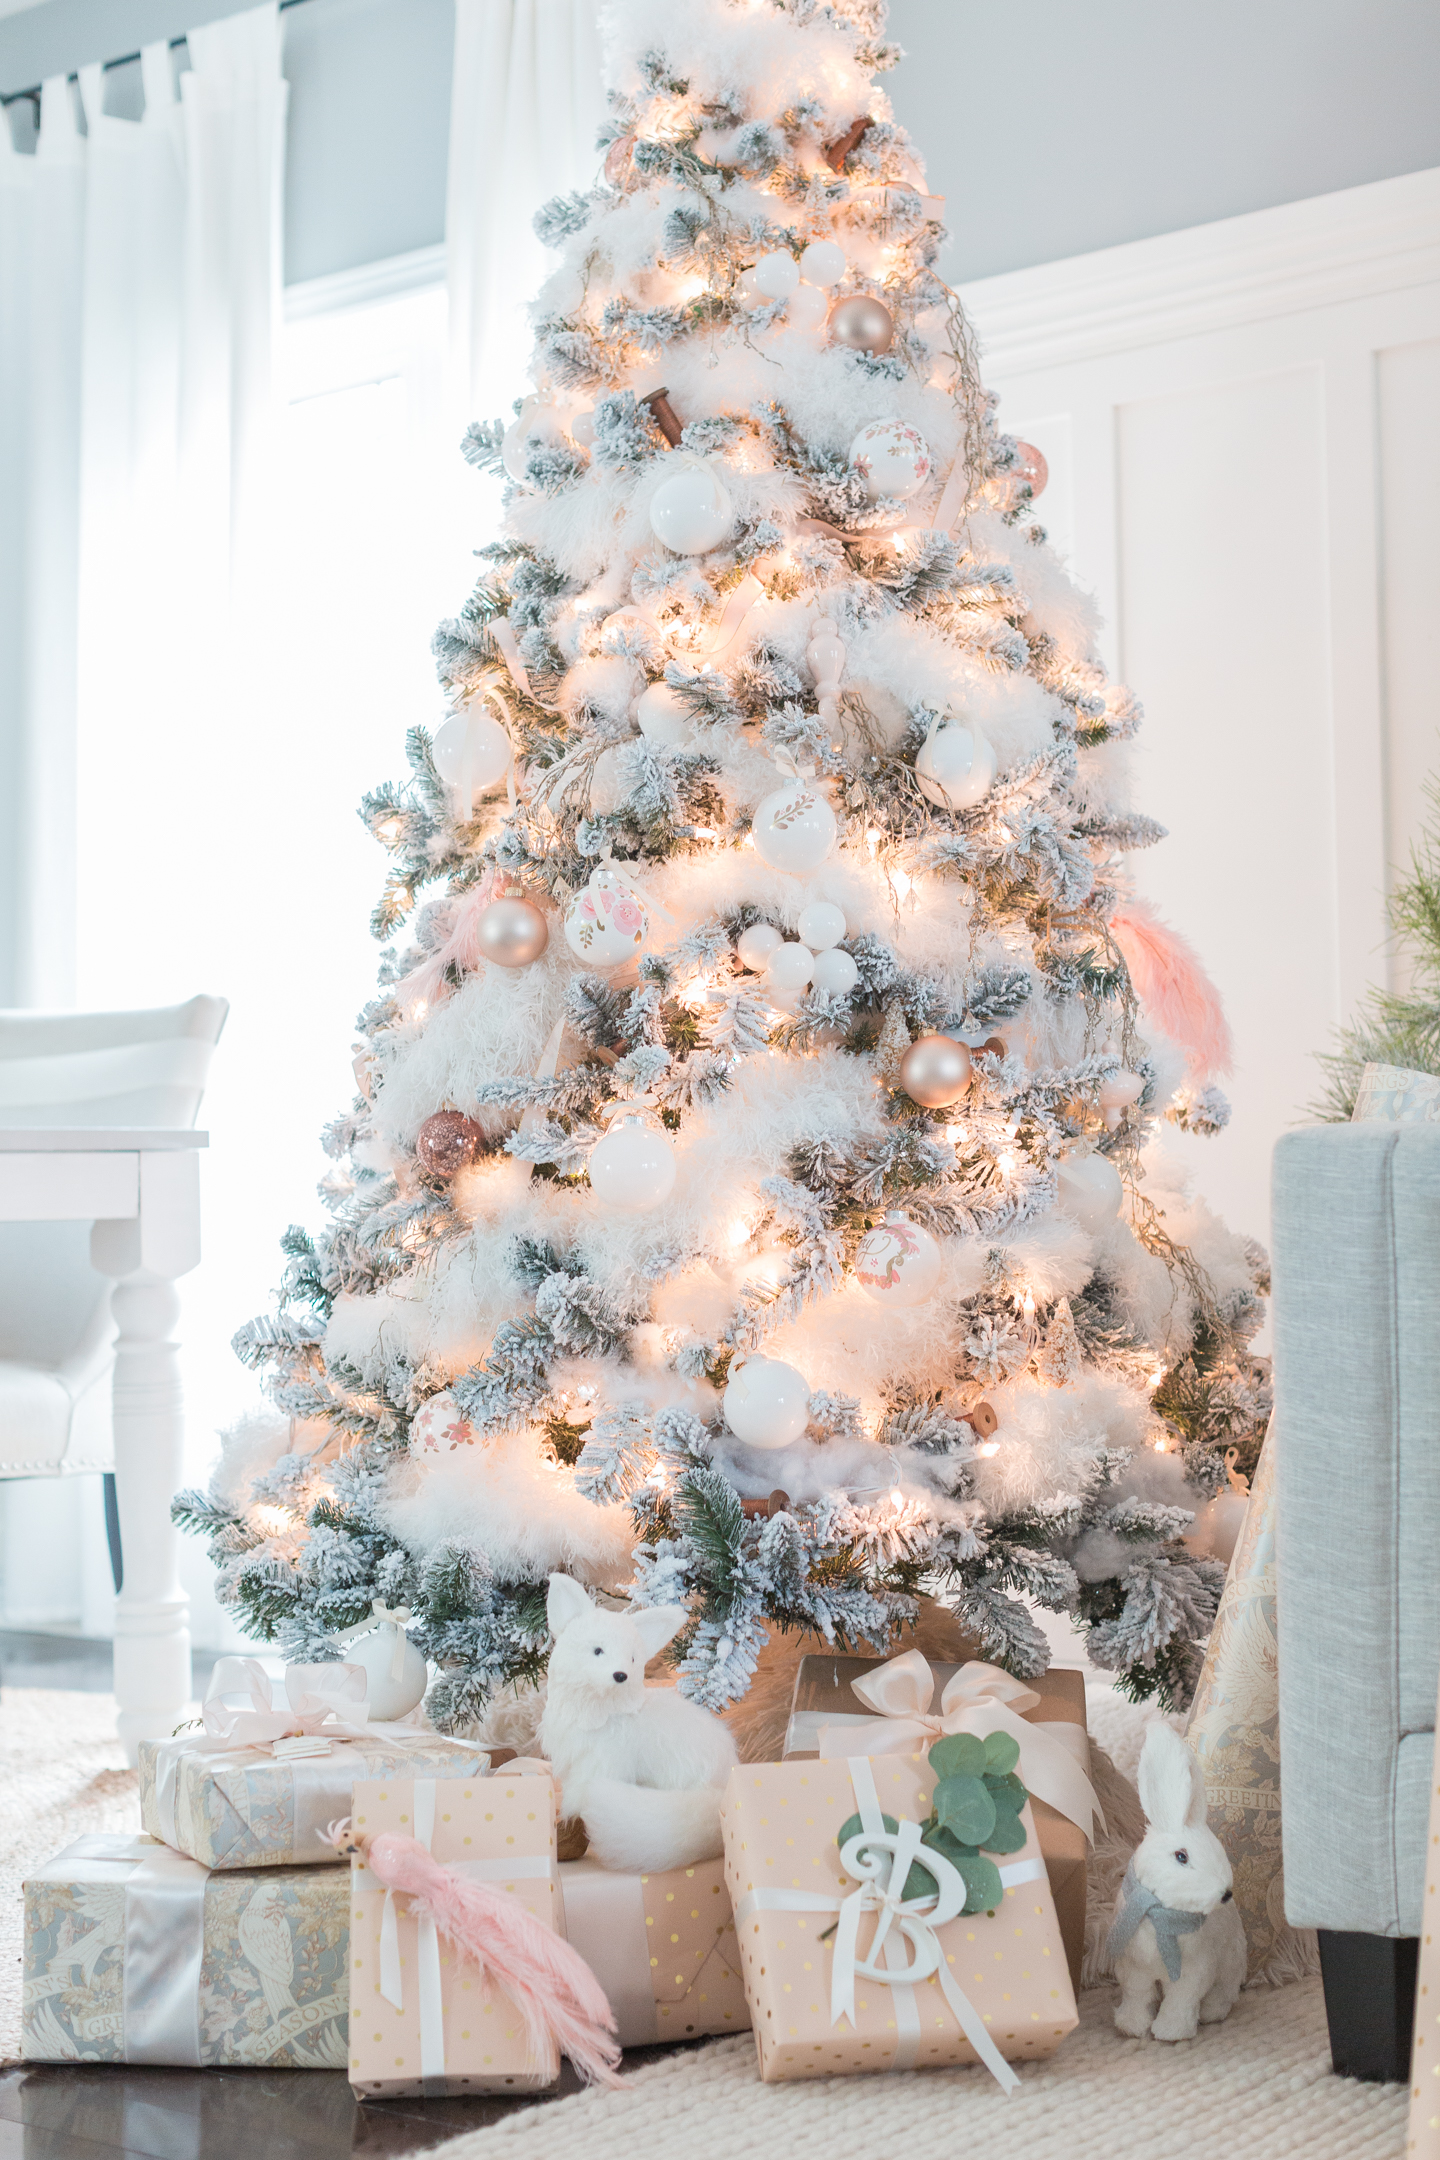 Luxury Christmas Decorations You Should be Using luxury christmas decorations Luxury Christmas Decorations You Should be Using Luxury Christmas Decorations You Should be Using